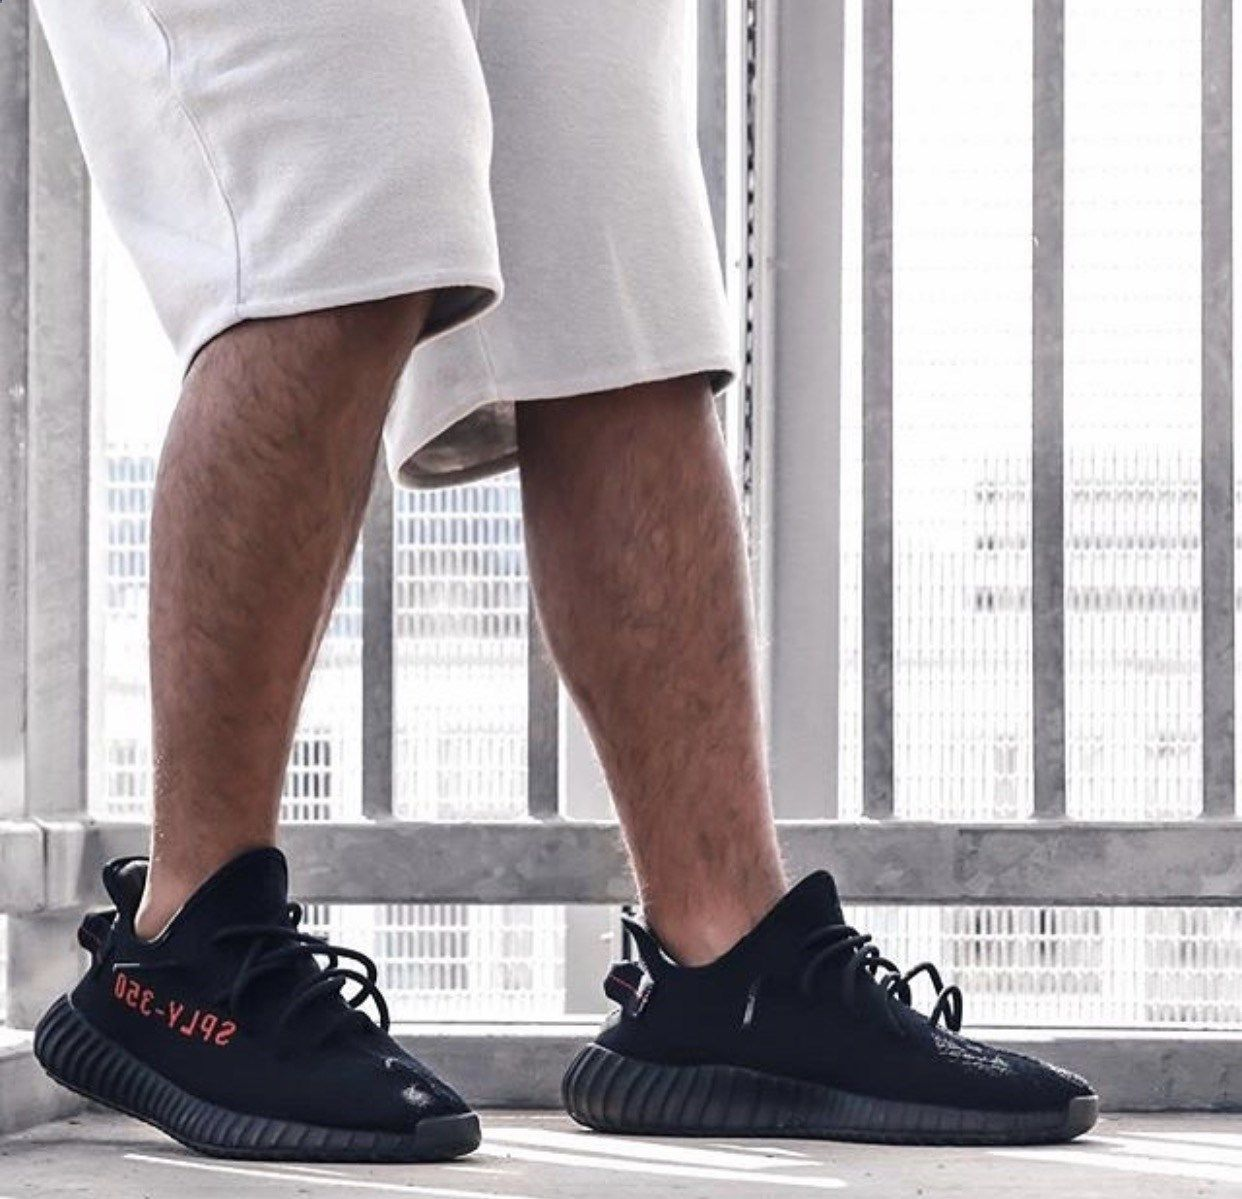 51b8c3423a5 Yeezy Boosts with shorts. Adidas Yeezy Boost 350 V2 Bred.